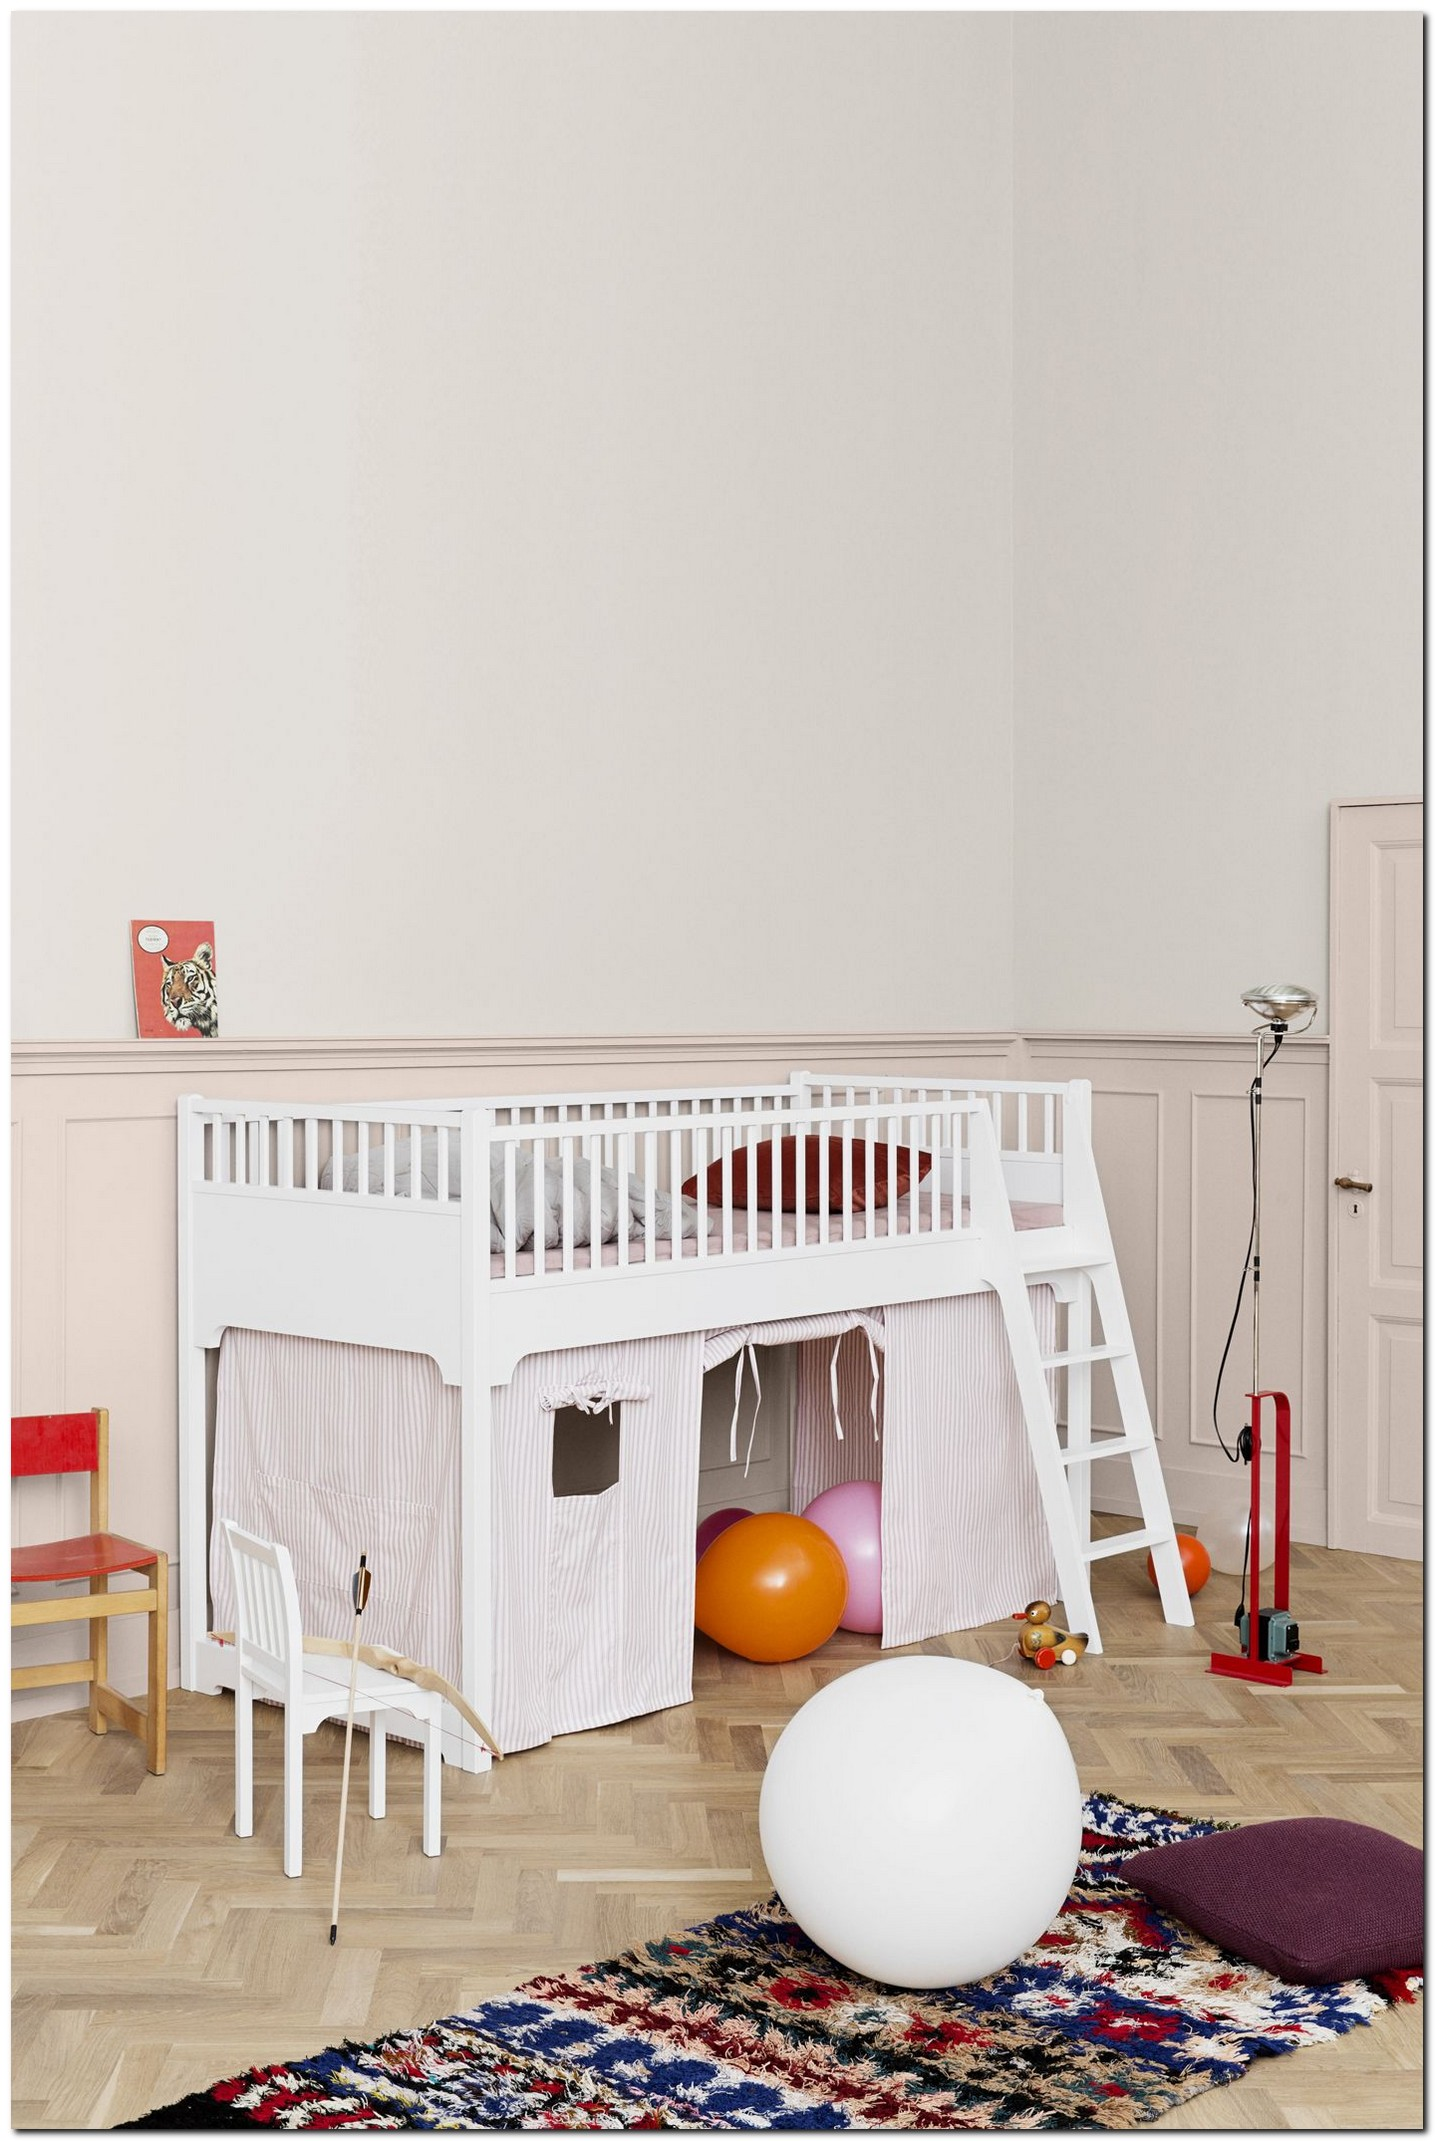 Permalink to Permit Your Children To Rest Comfortably On Bunk Beds For Kids